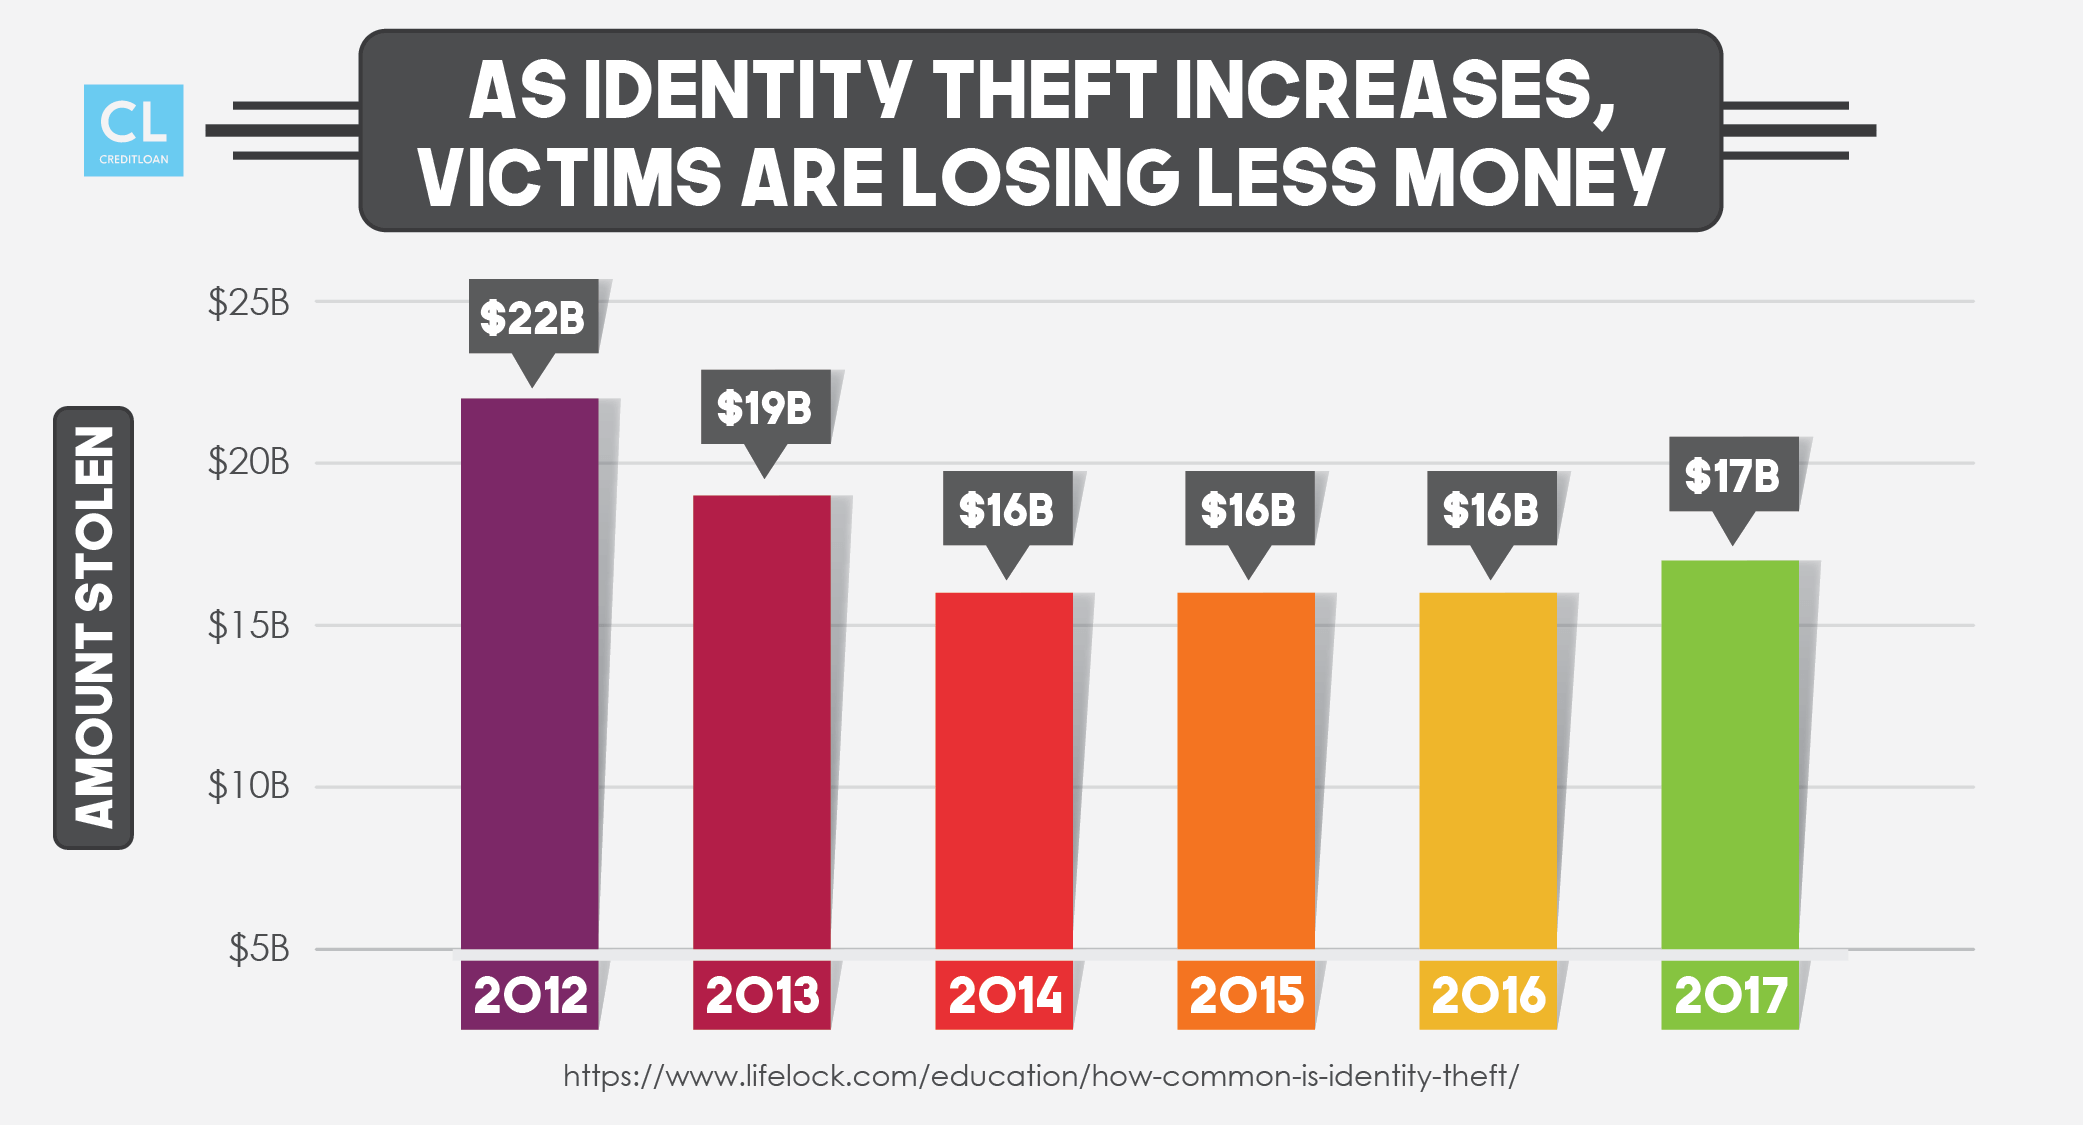 As Identity Theft Increases, Victims are Losing Less Money from 2012-2017